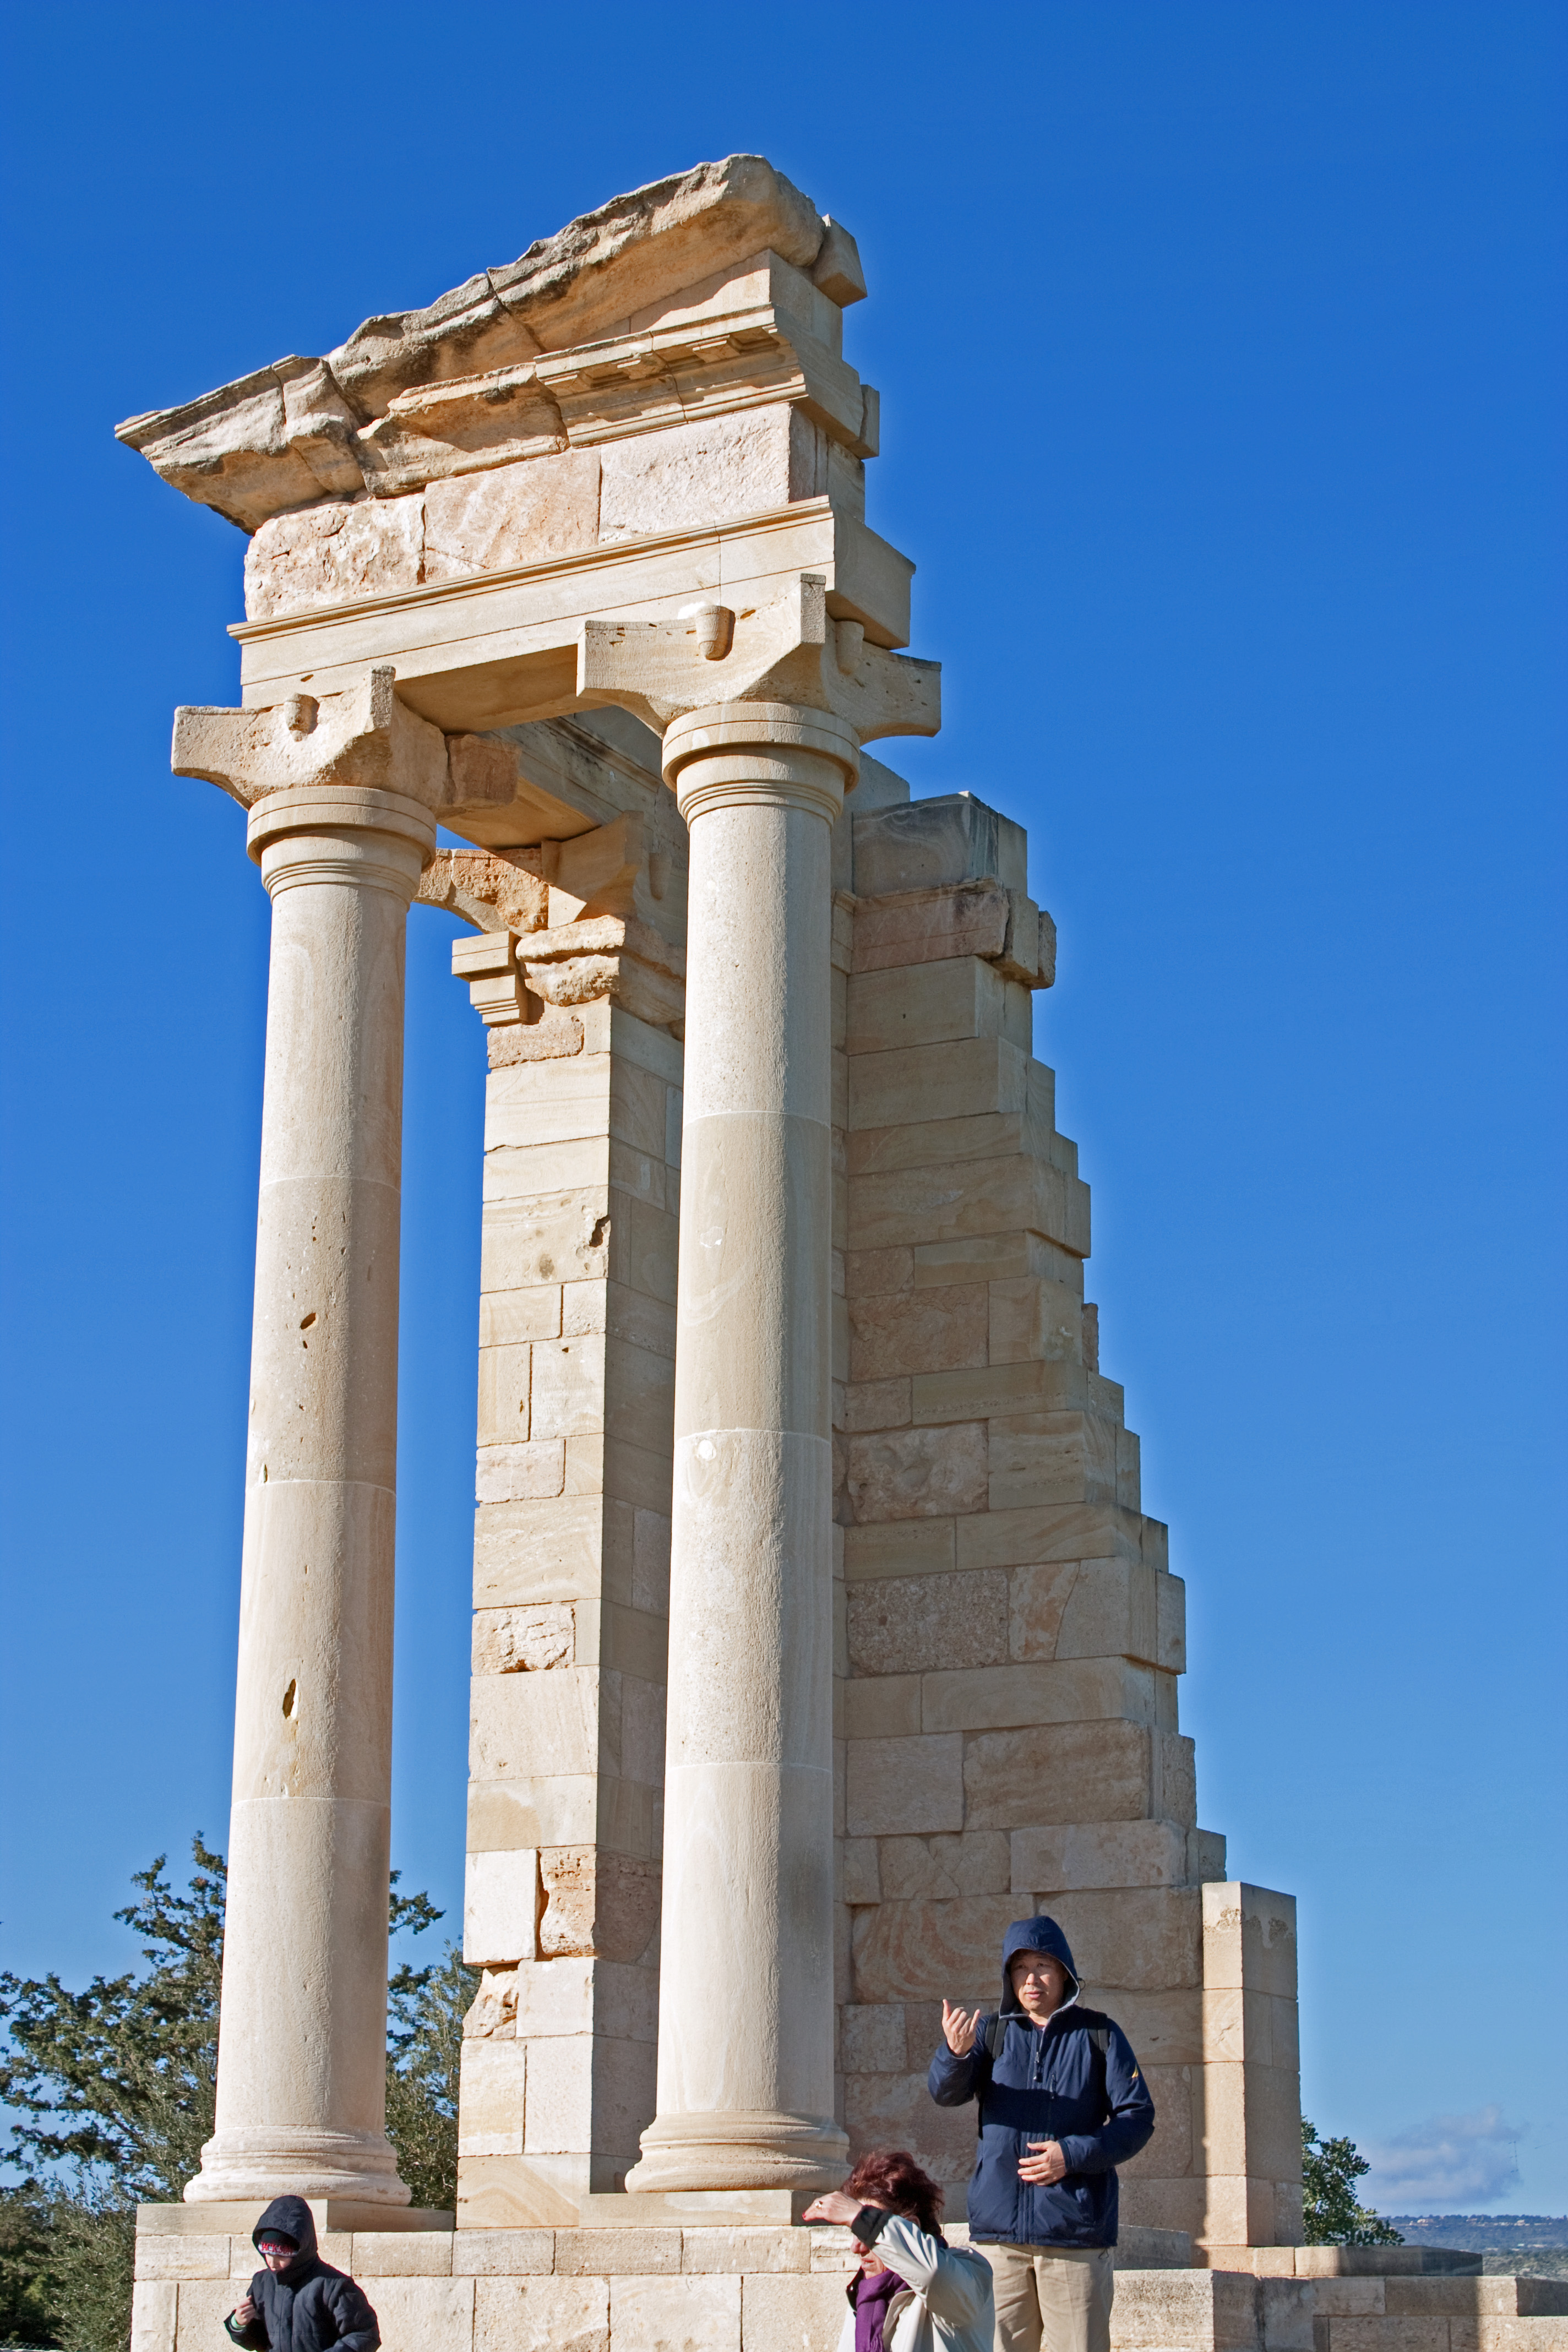 File:Sanctuary of Apollo Hylates temple 2010 3.jpg